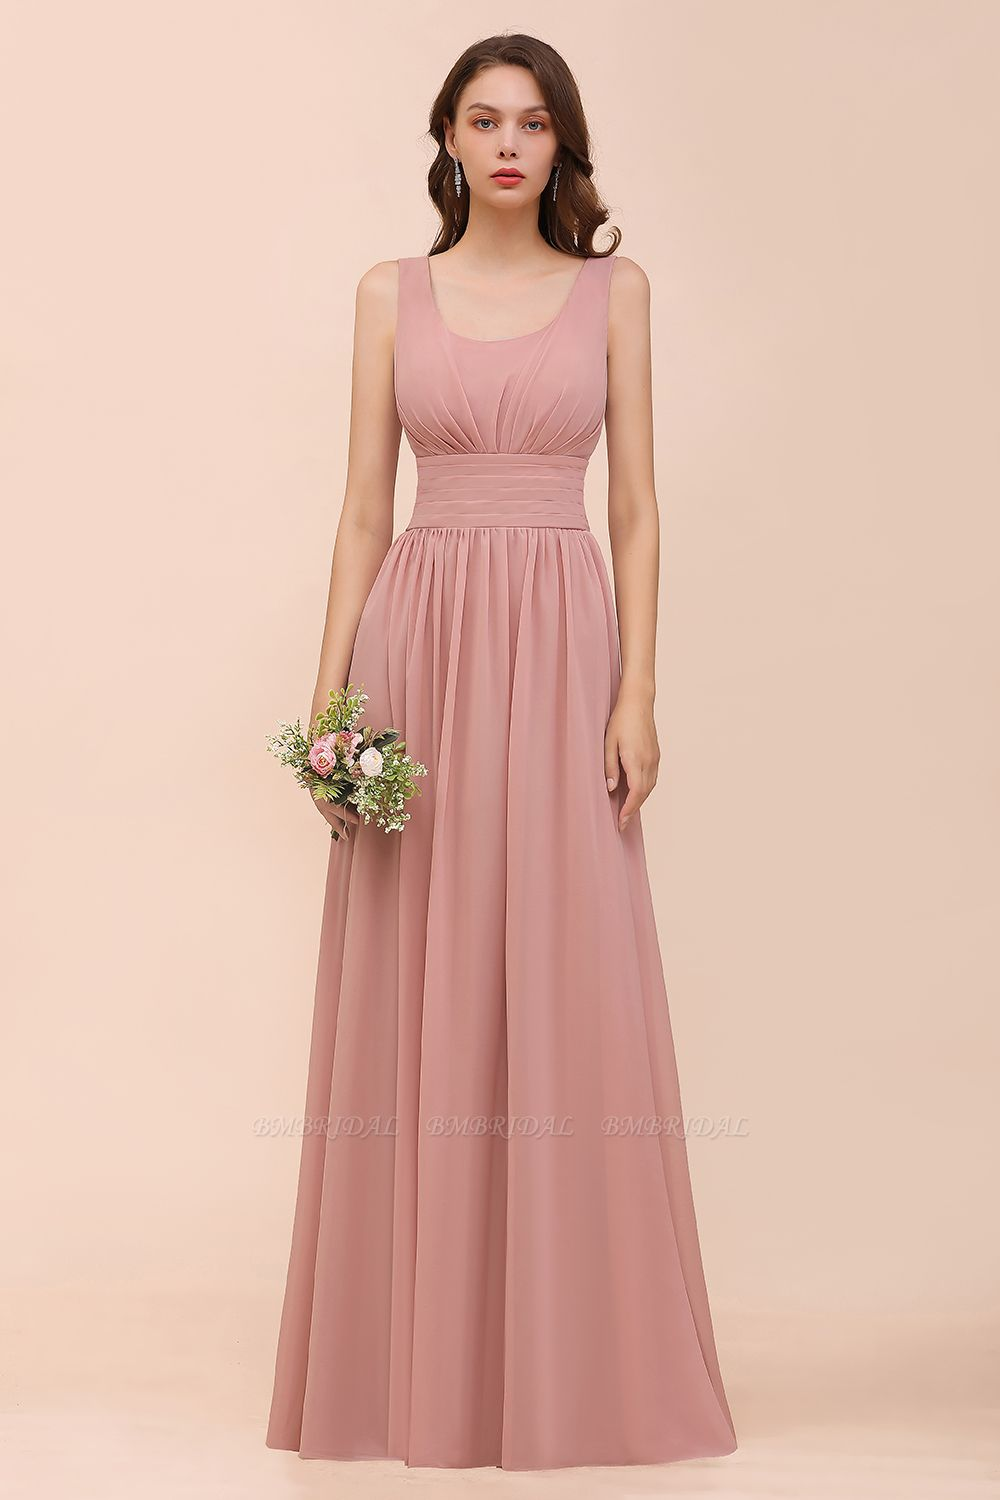 Affordable Sleeveless Ruffle Vintage Mauve Bridesmaid Dress